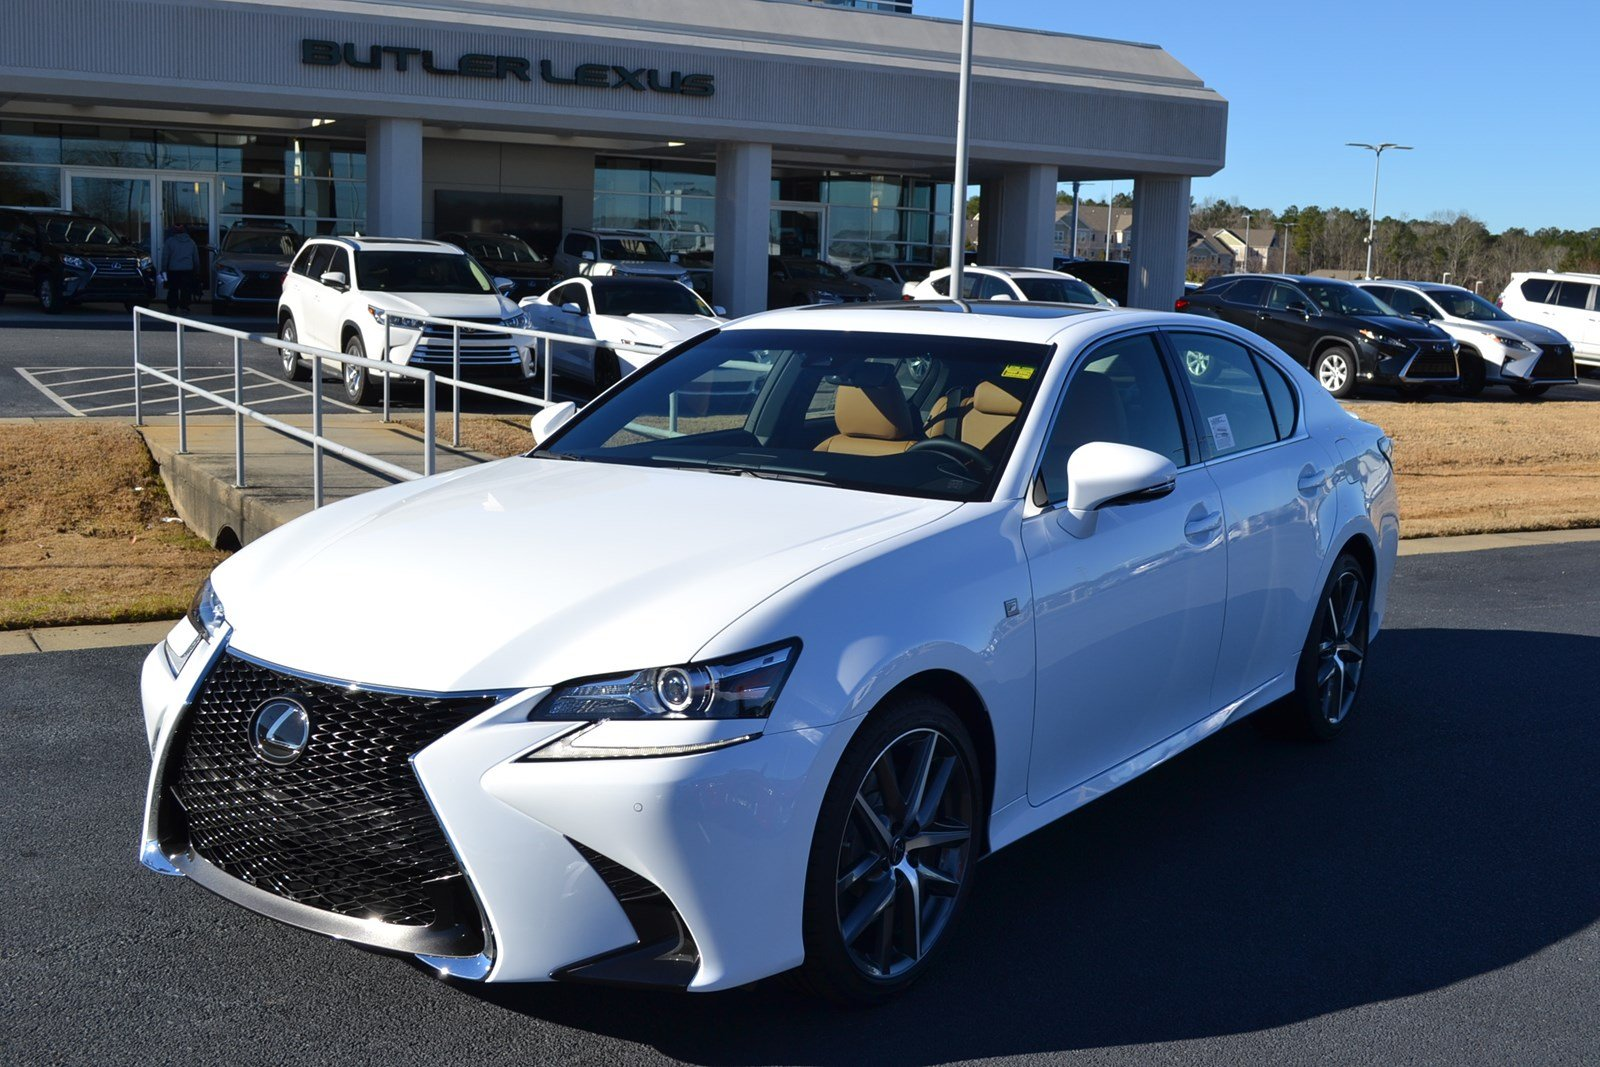 Butler Toyota Macon >> New 2019 Lexus GS 350 F SPORT 4dr Car in Macon #L19305 ...